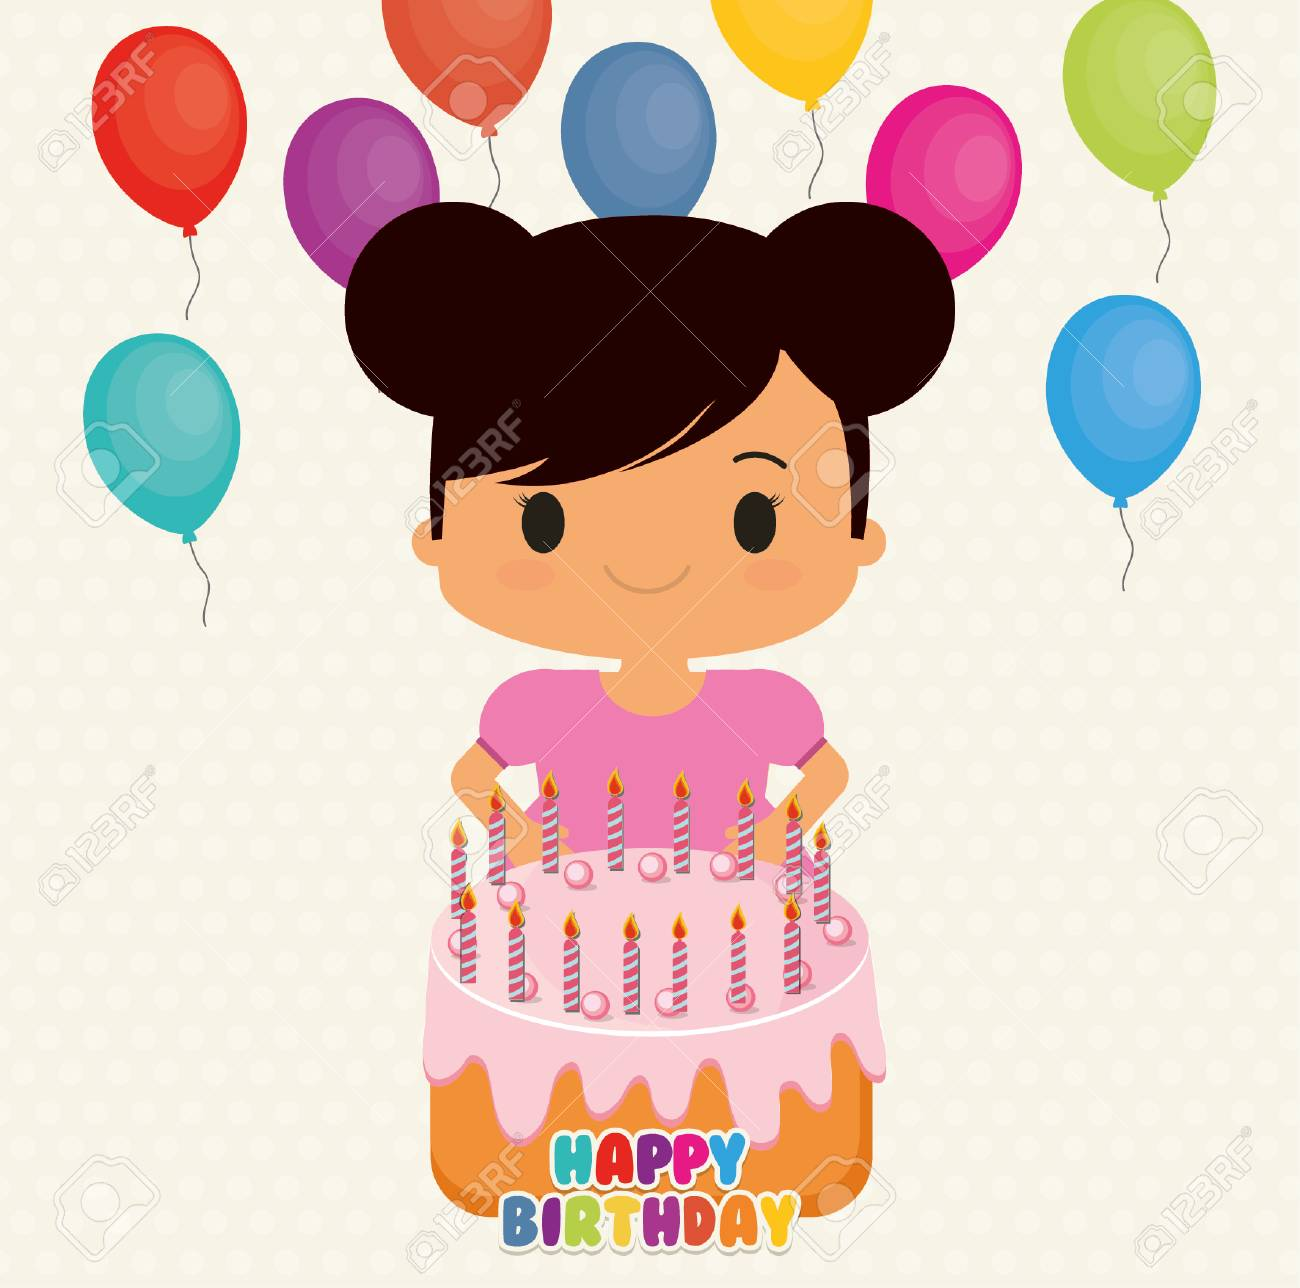 Girl Cartoon With Balloons Anc Cake Icon Happy Birthday Celebration And Card Theme Colorful